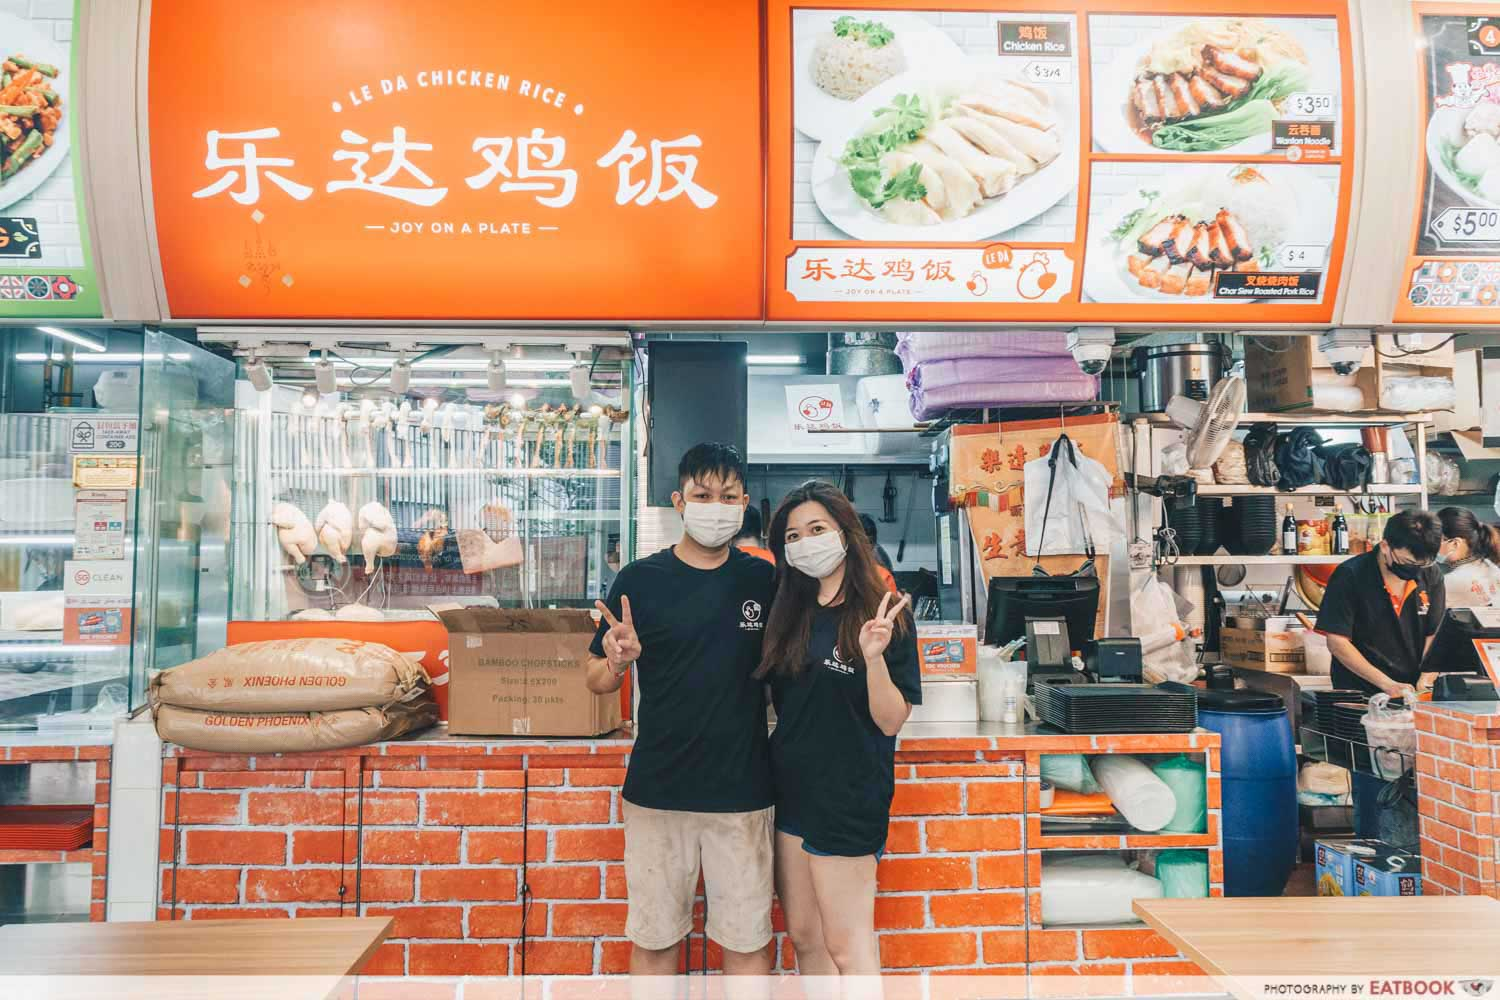 Le Da Chicken Rice - store owners